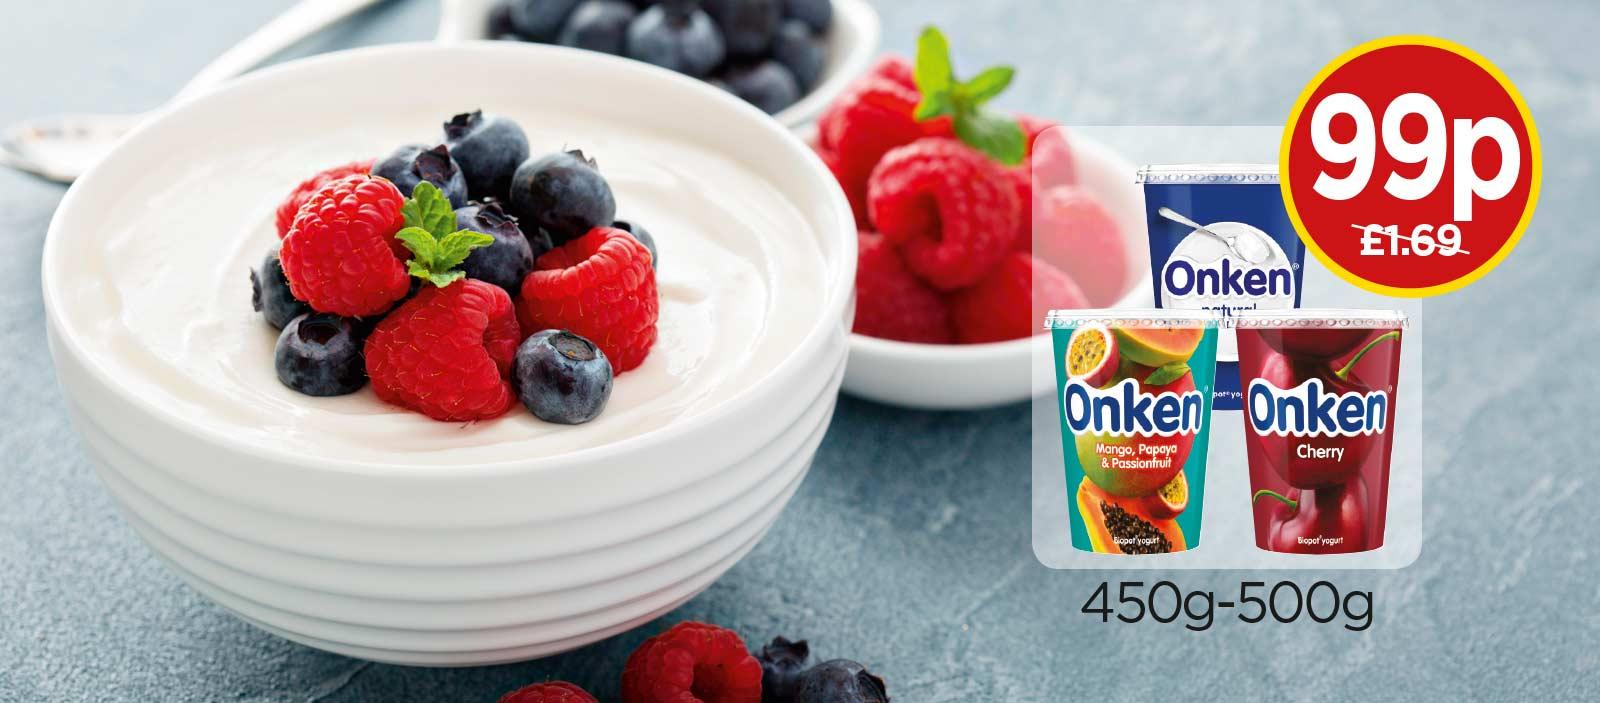 Onken Biopot Yogurt - Mango, Pappaya & Passionfruit, Natural Set, Cherry - Was £1.69, Now 99p at Budgens